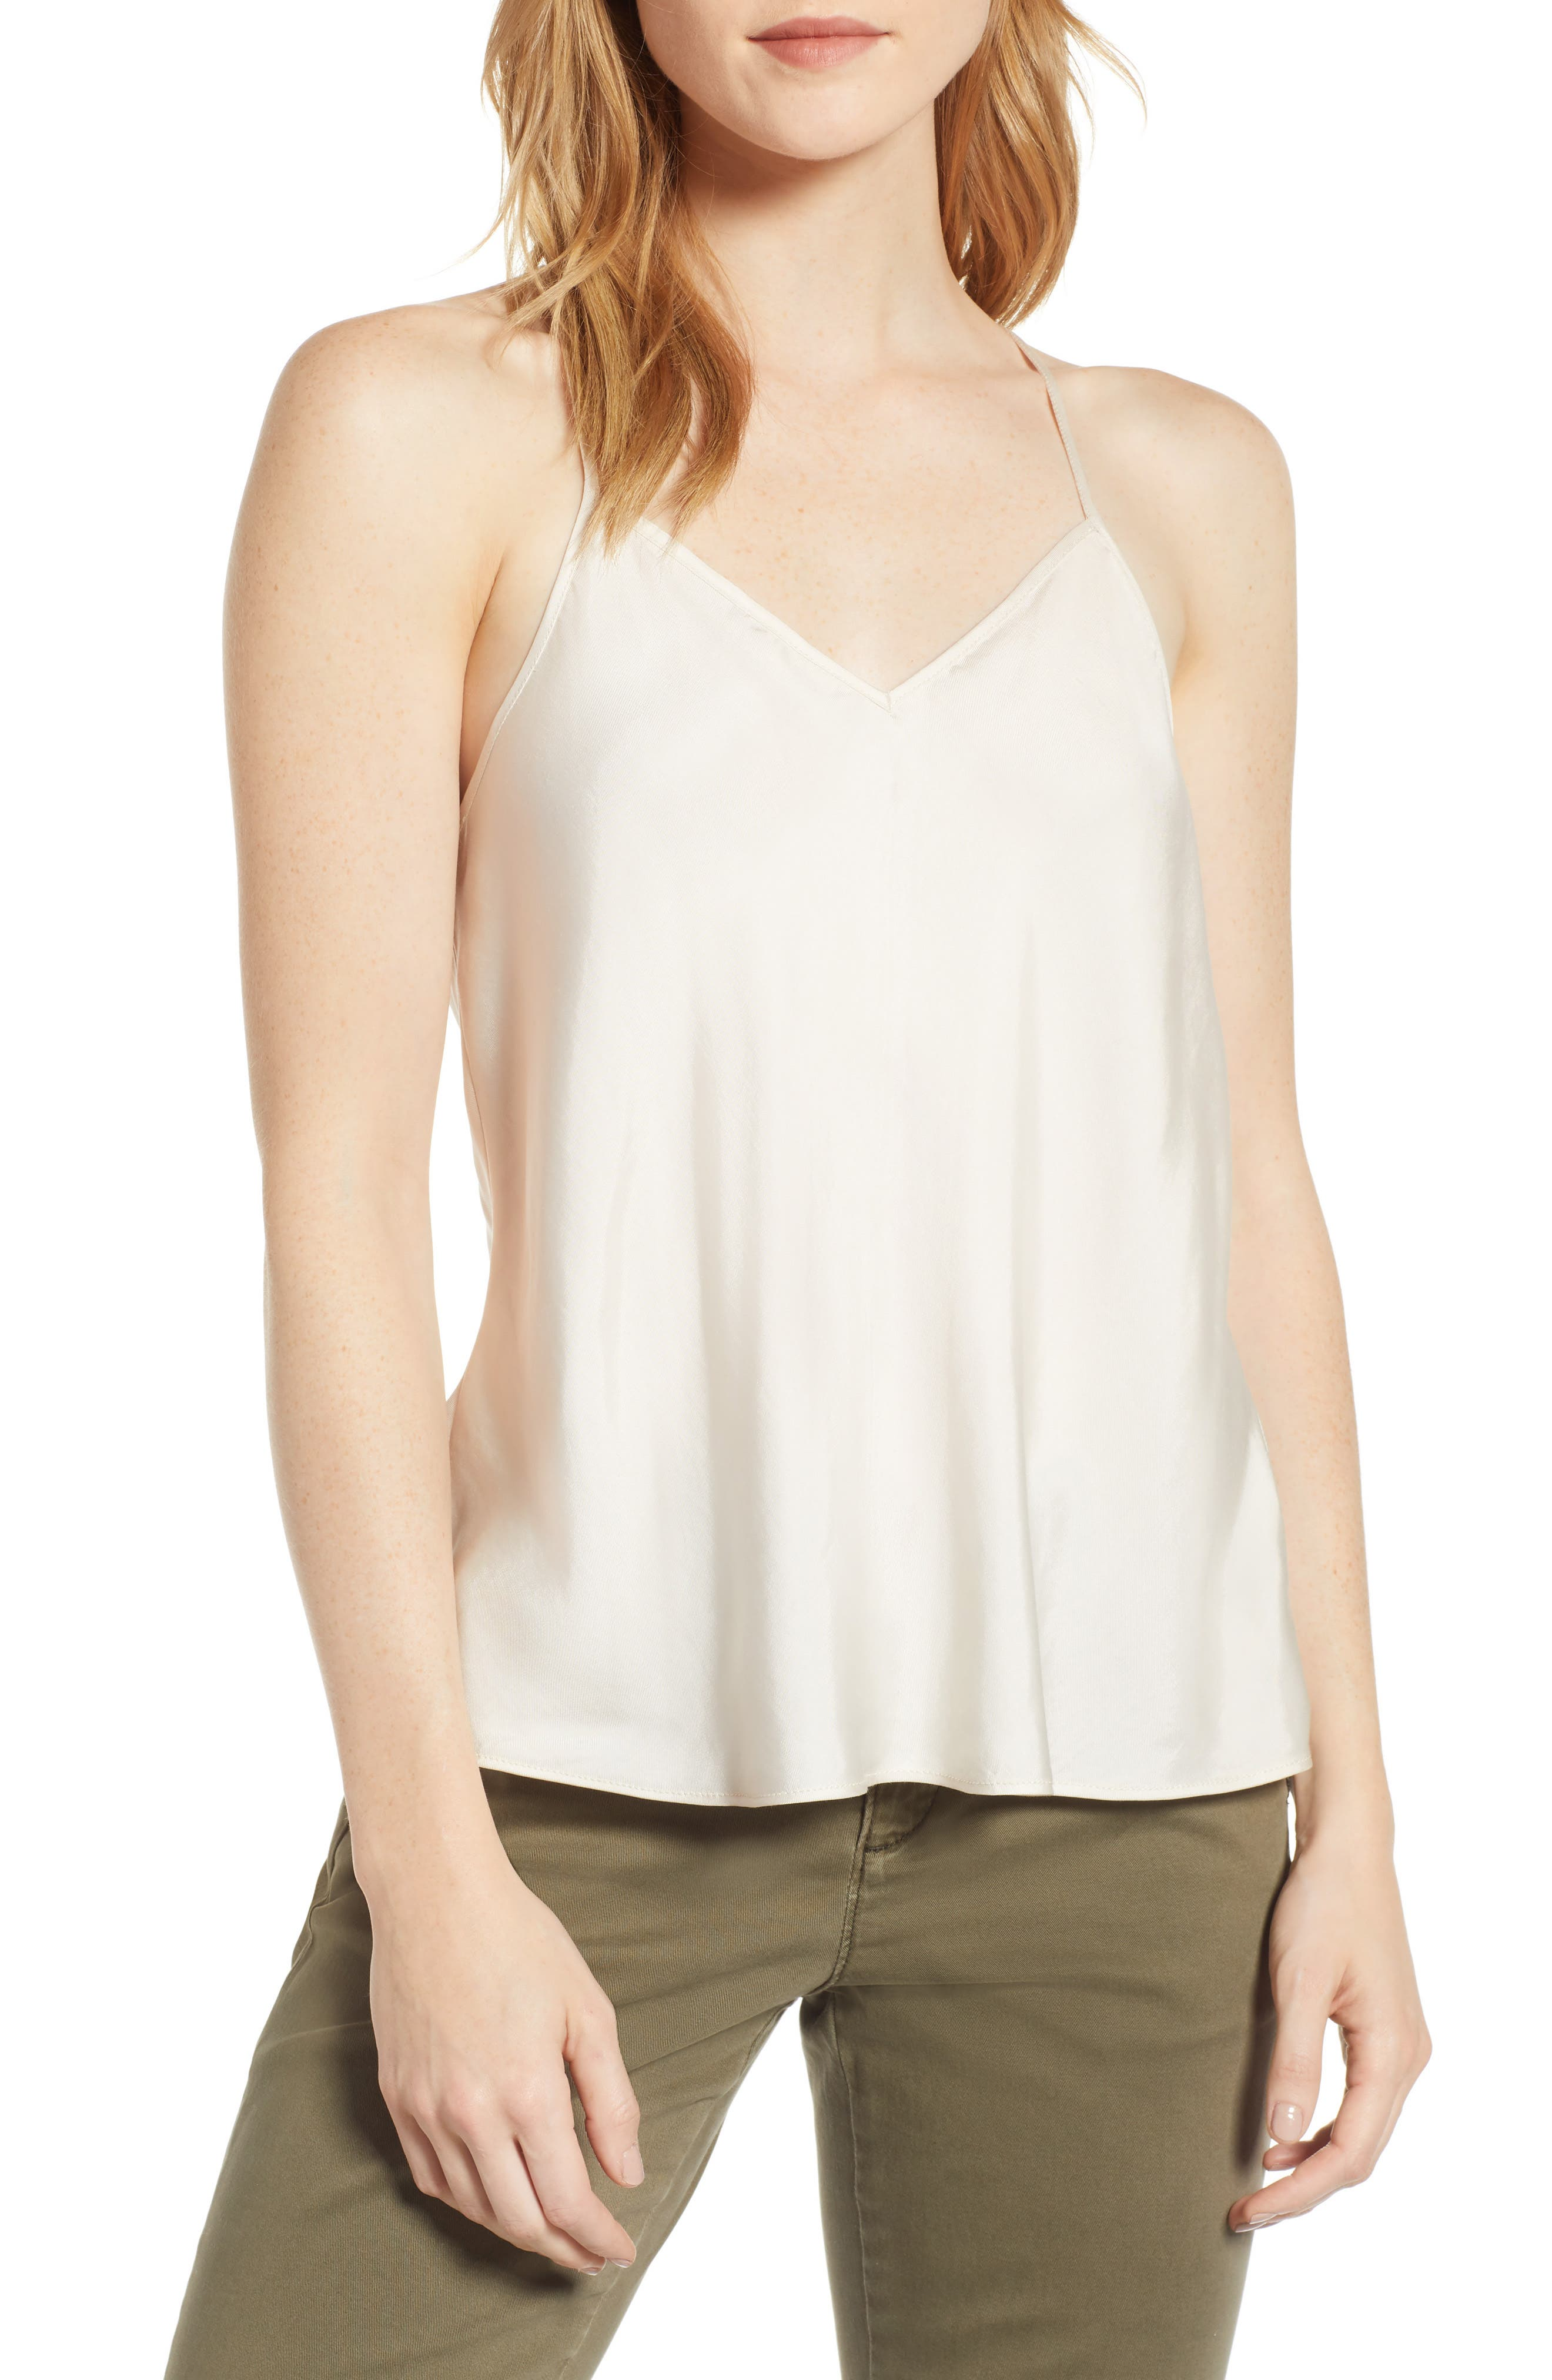 Lou & Grey Shimmer Twill Racerback Camisole Top, Beige